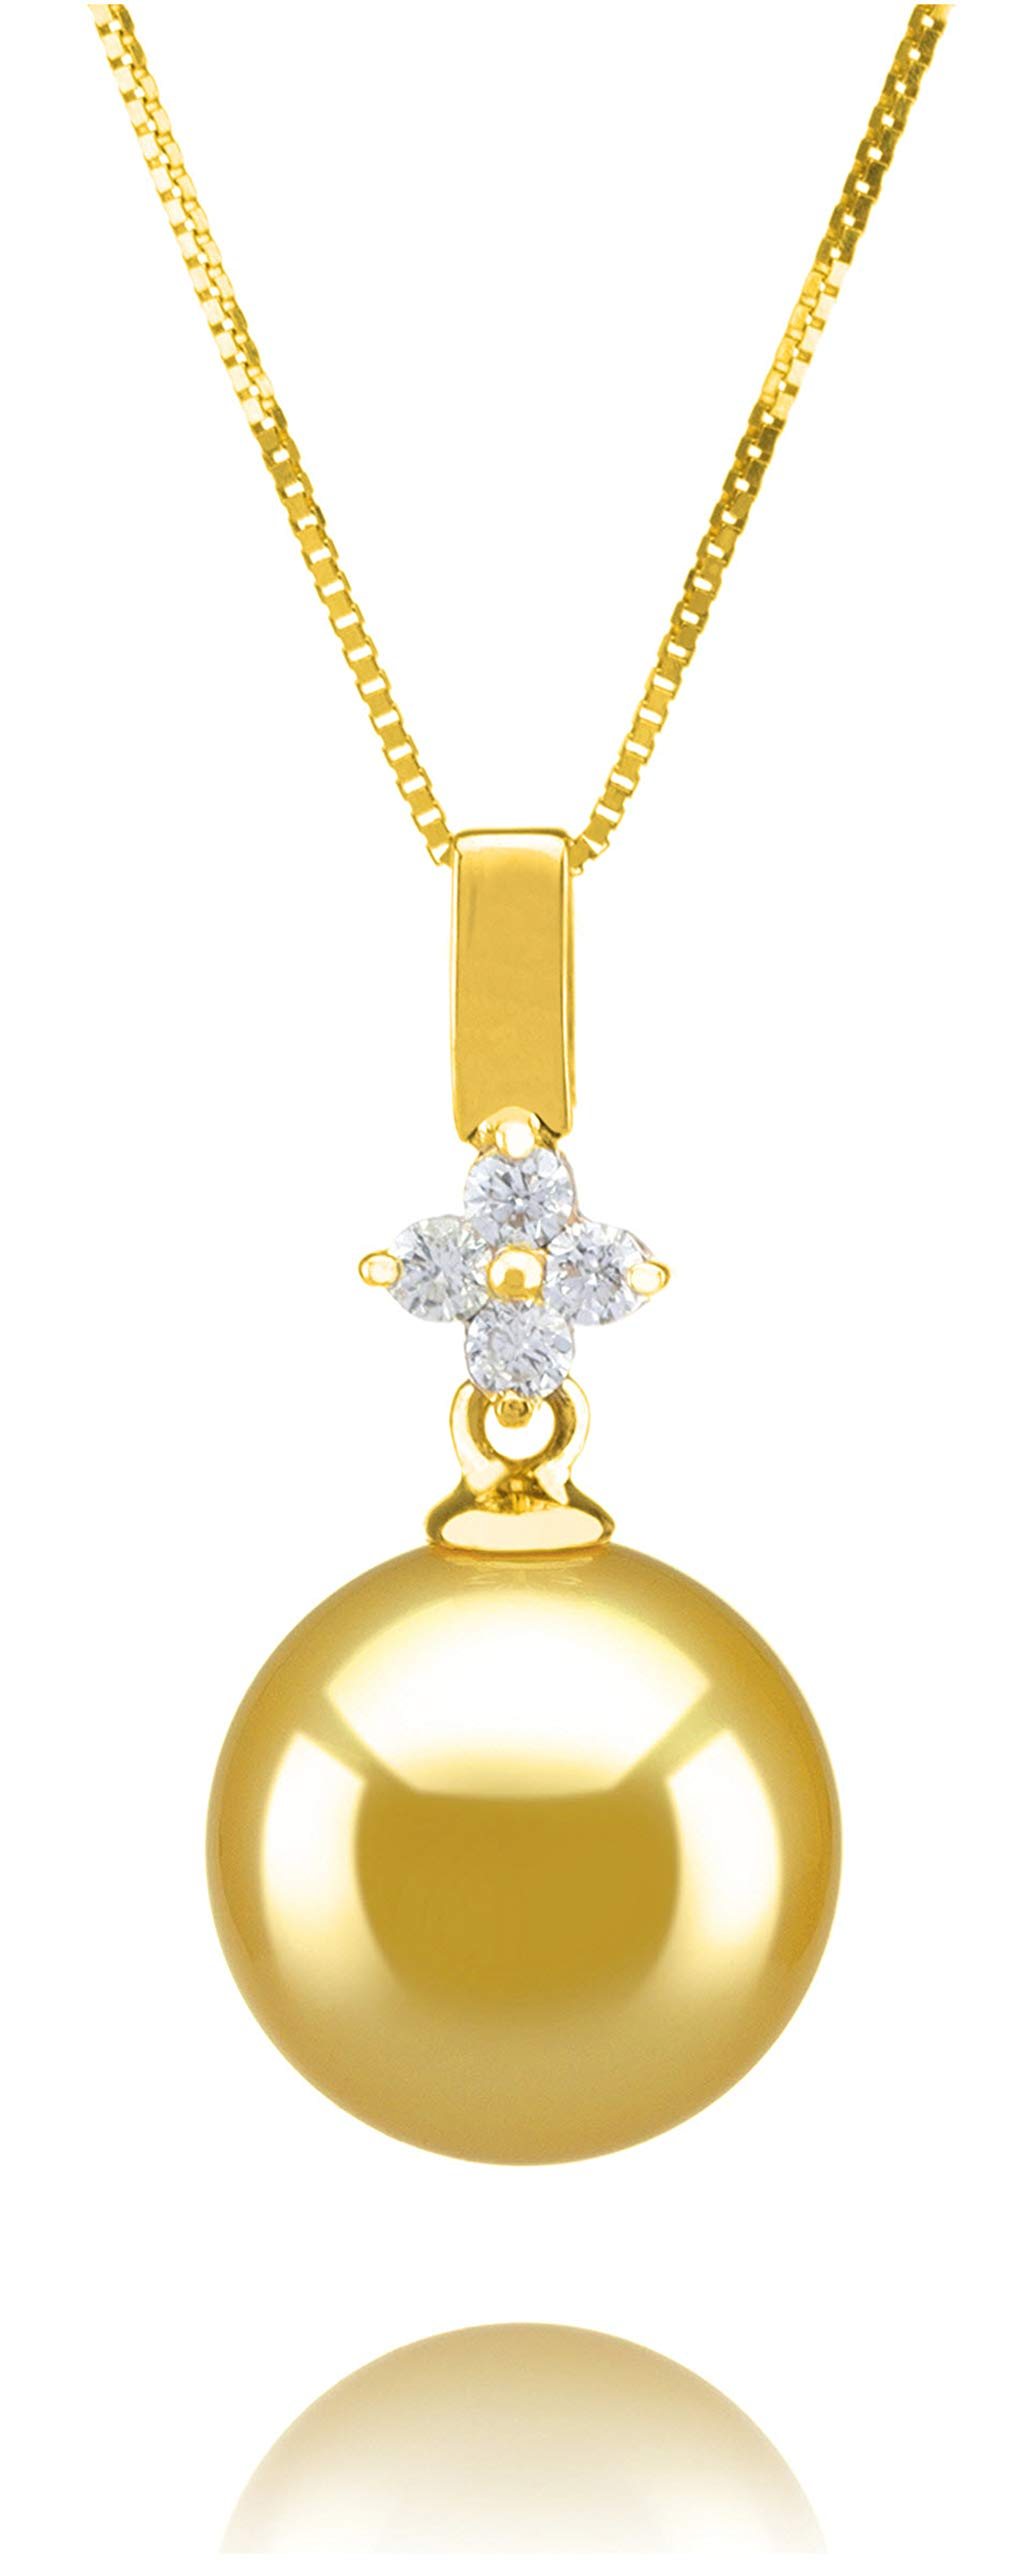 Hilda Gold 10-11mm AAA Quality South Sea 14K Yellow Gold Cultured Pearl Pendant For Women